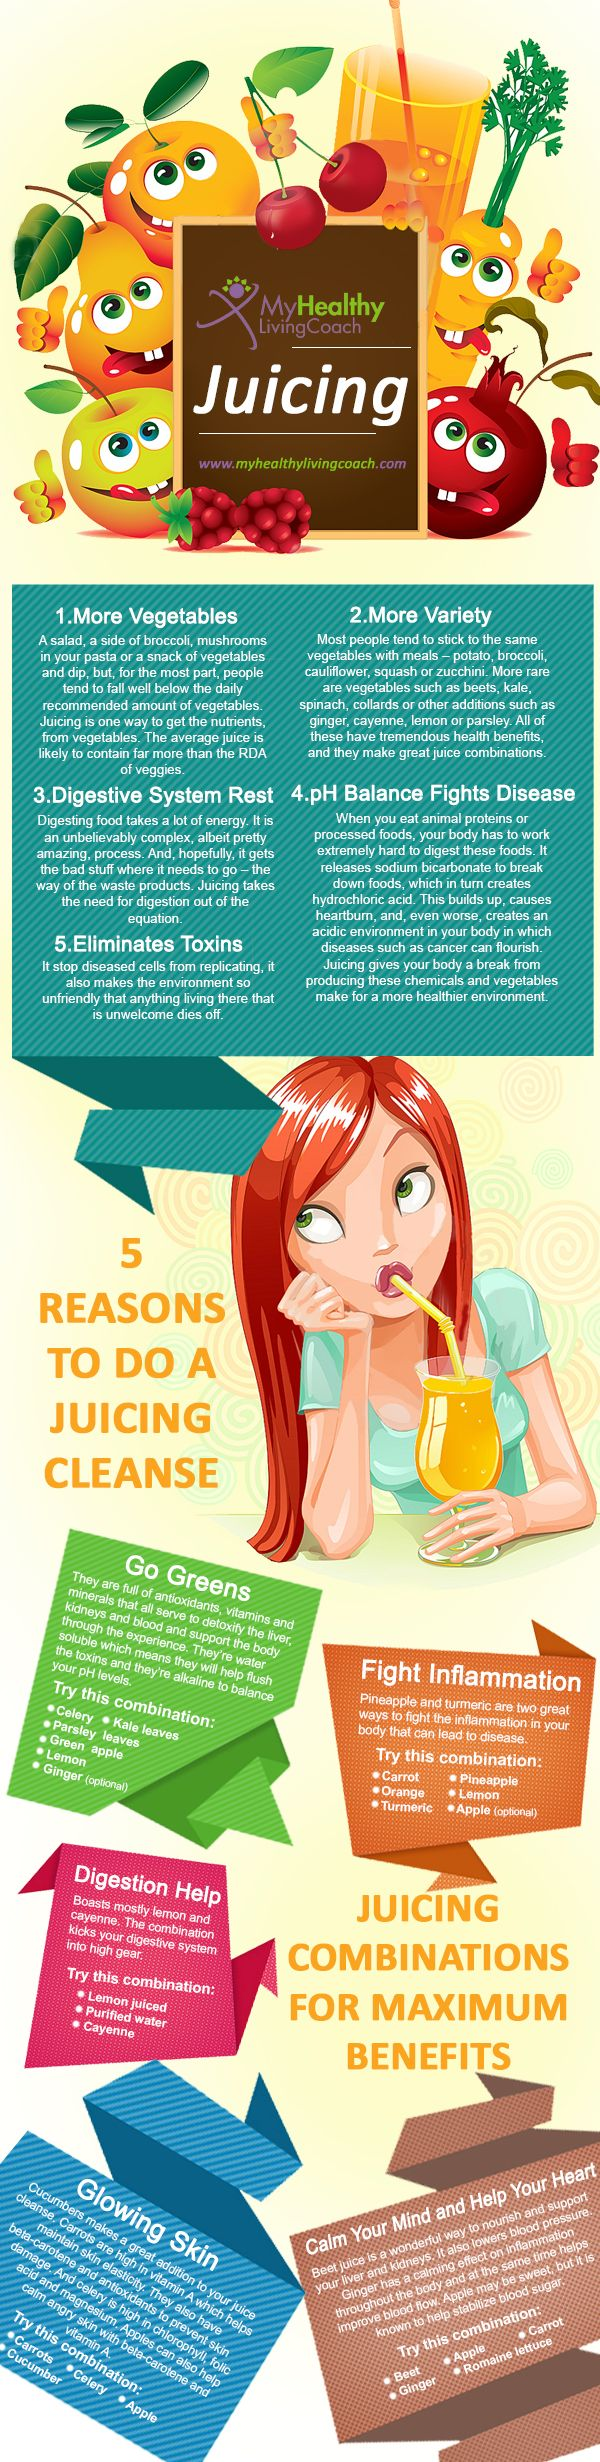 There are countless reasons to do a juice cleanse, but to get you started here is one great infographic which gives you 5 reasons to get started a healthy cleansing detox with juice! www.newleafdetoxresort.com